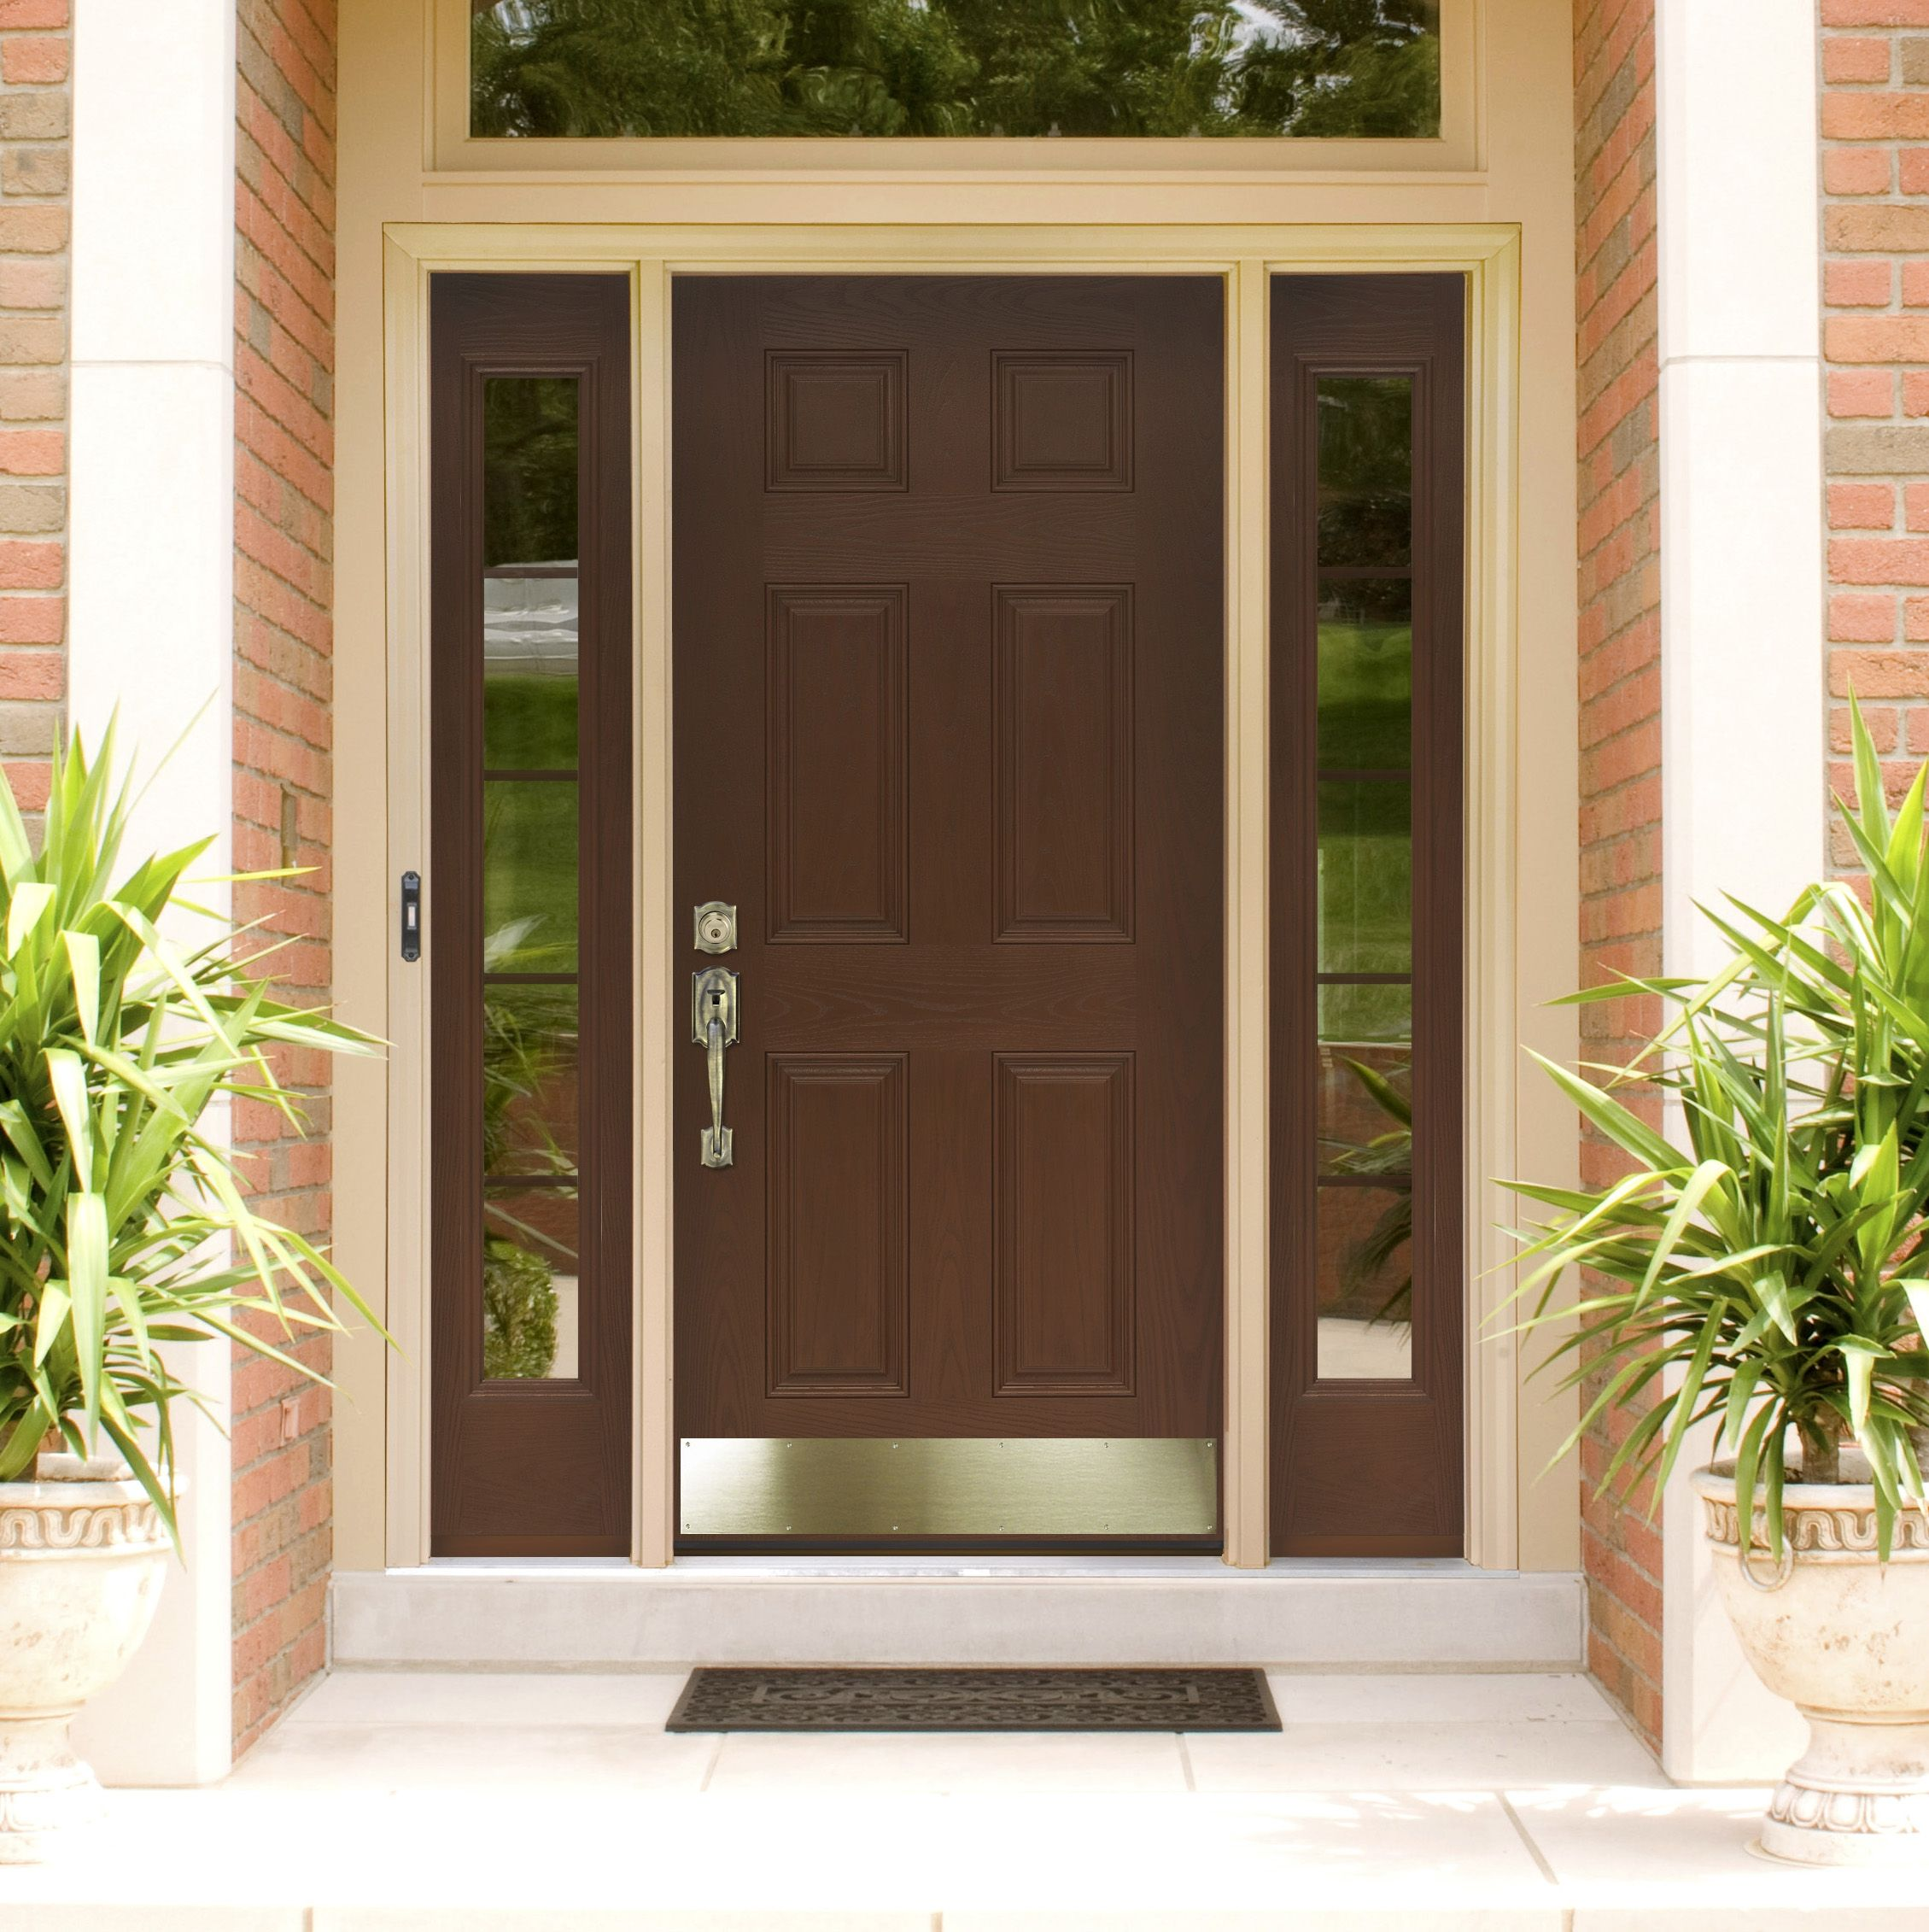 Exquisite brown mahogany 6 panels craftsman single modern for Front entrance doors with glass